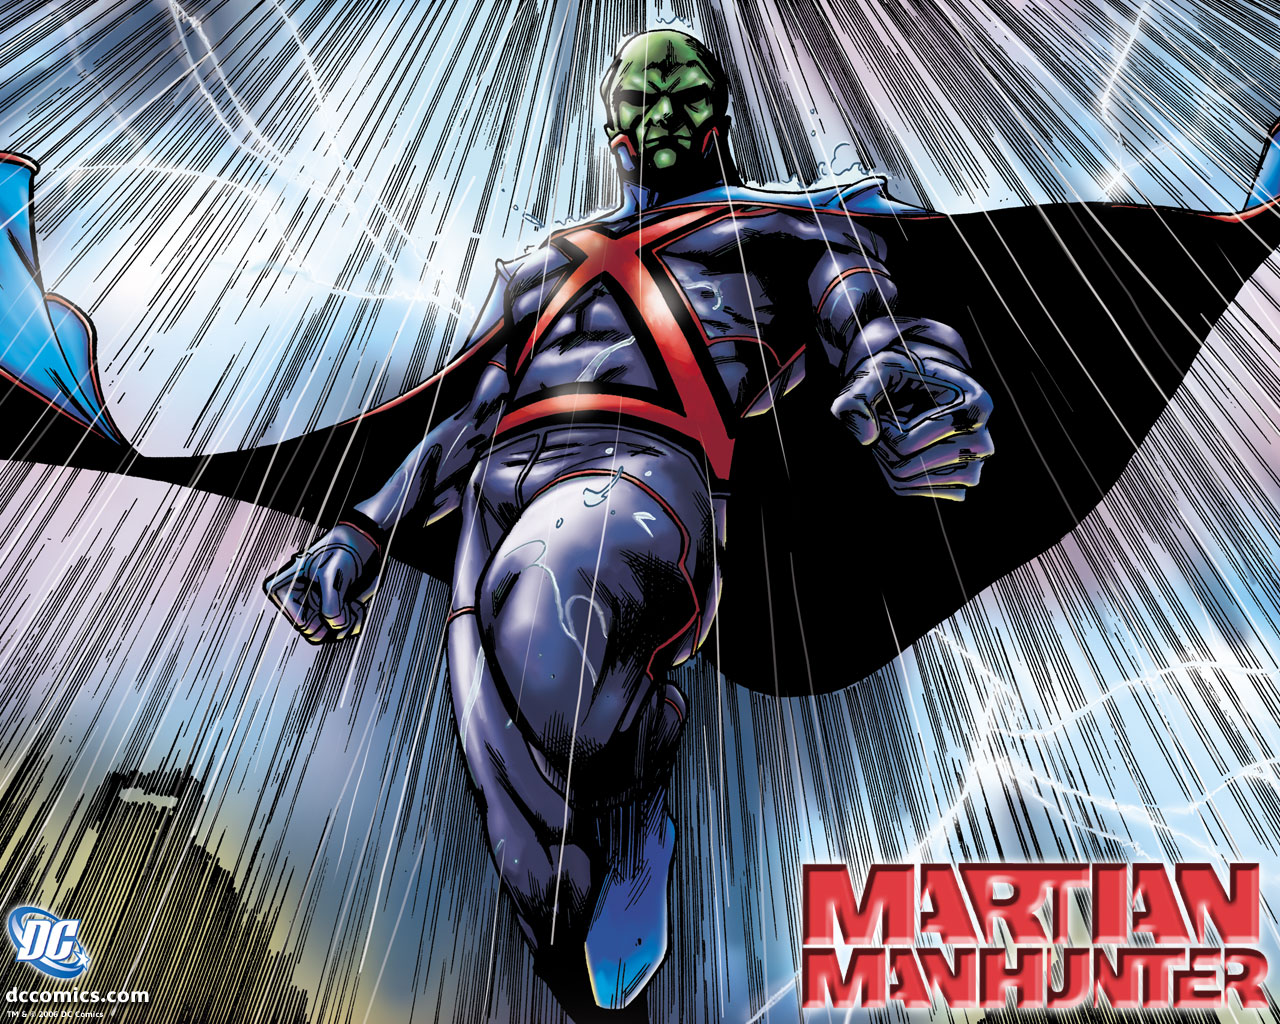 martianmanhunter11280x1024.jpg